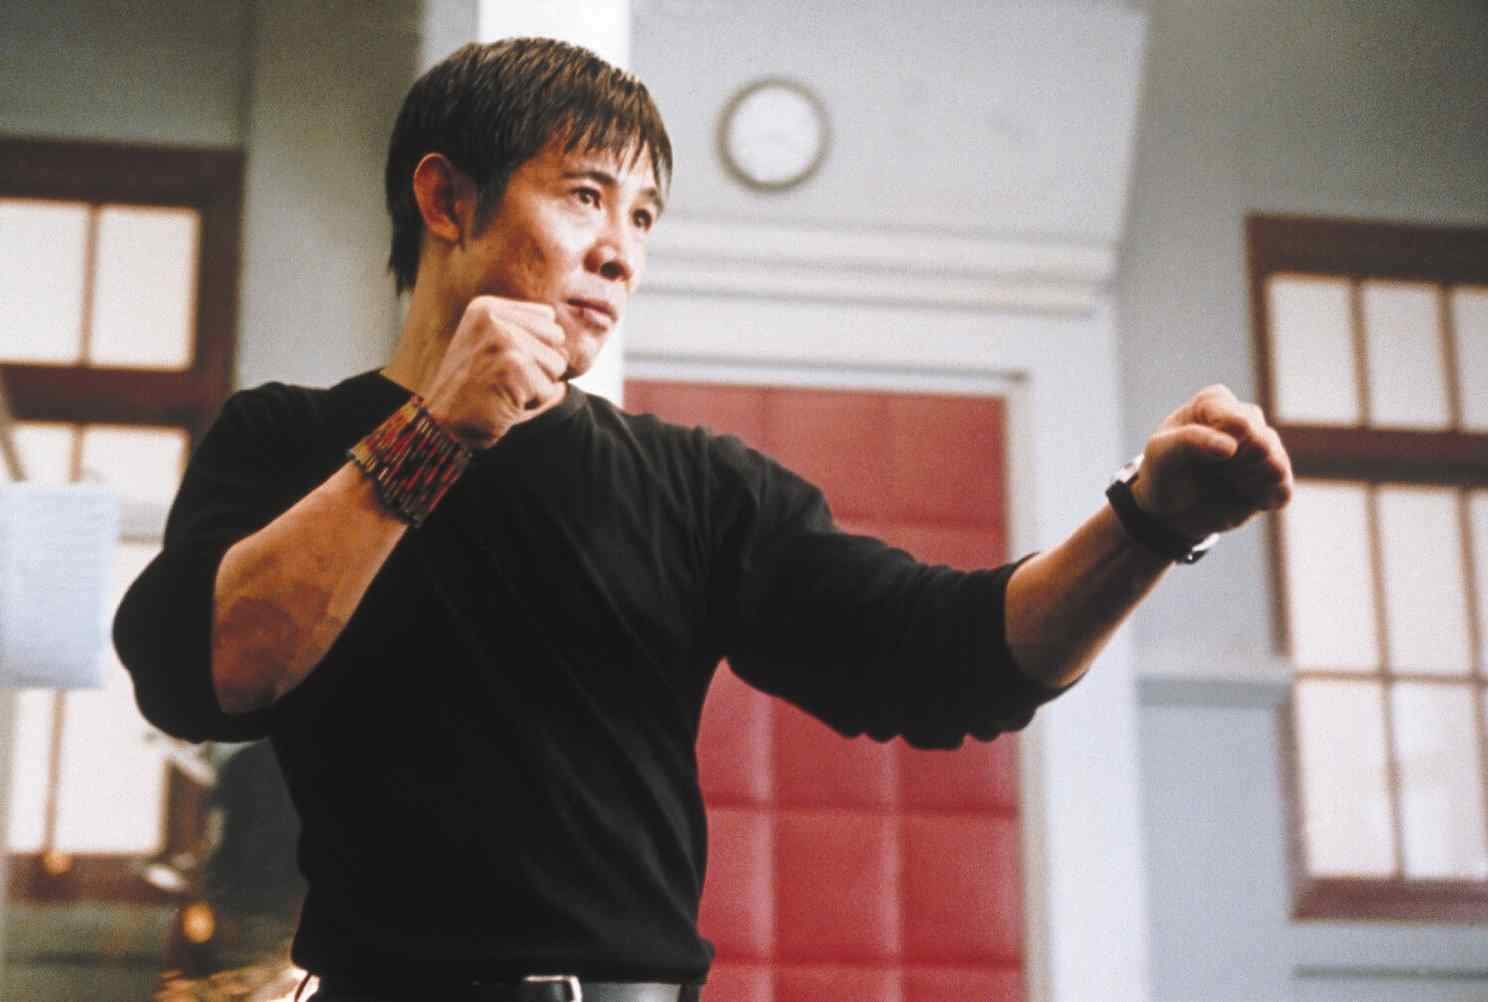 Liu Jian (Jet Li) in the middle of a fight scene in Chris Nahon's martial arts thriller Kiss of the Dragon.